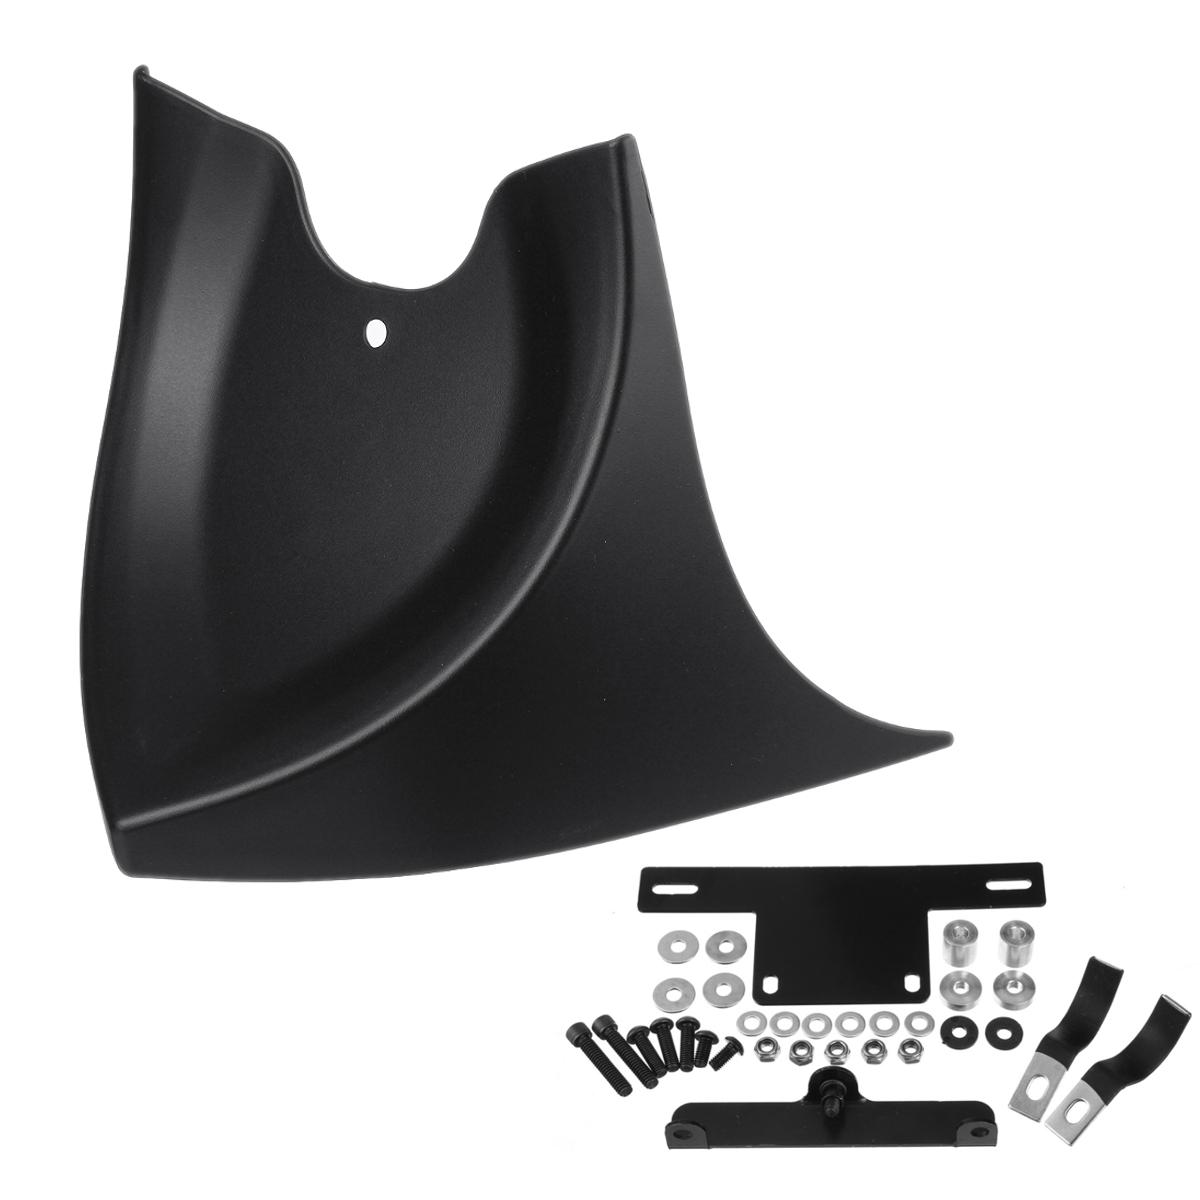 Motorcycle Lower Chin Fairing Front Spoiler Universal For Harley XL V-ROD Touring Glide